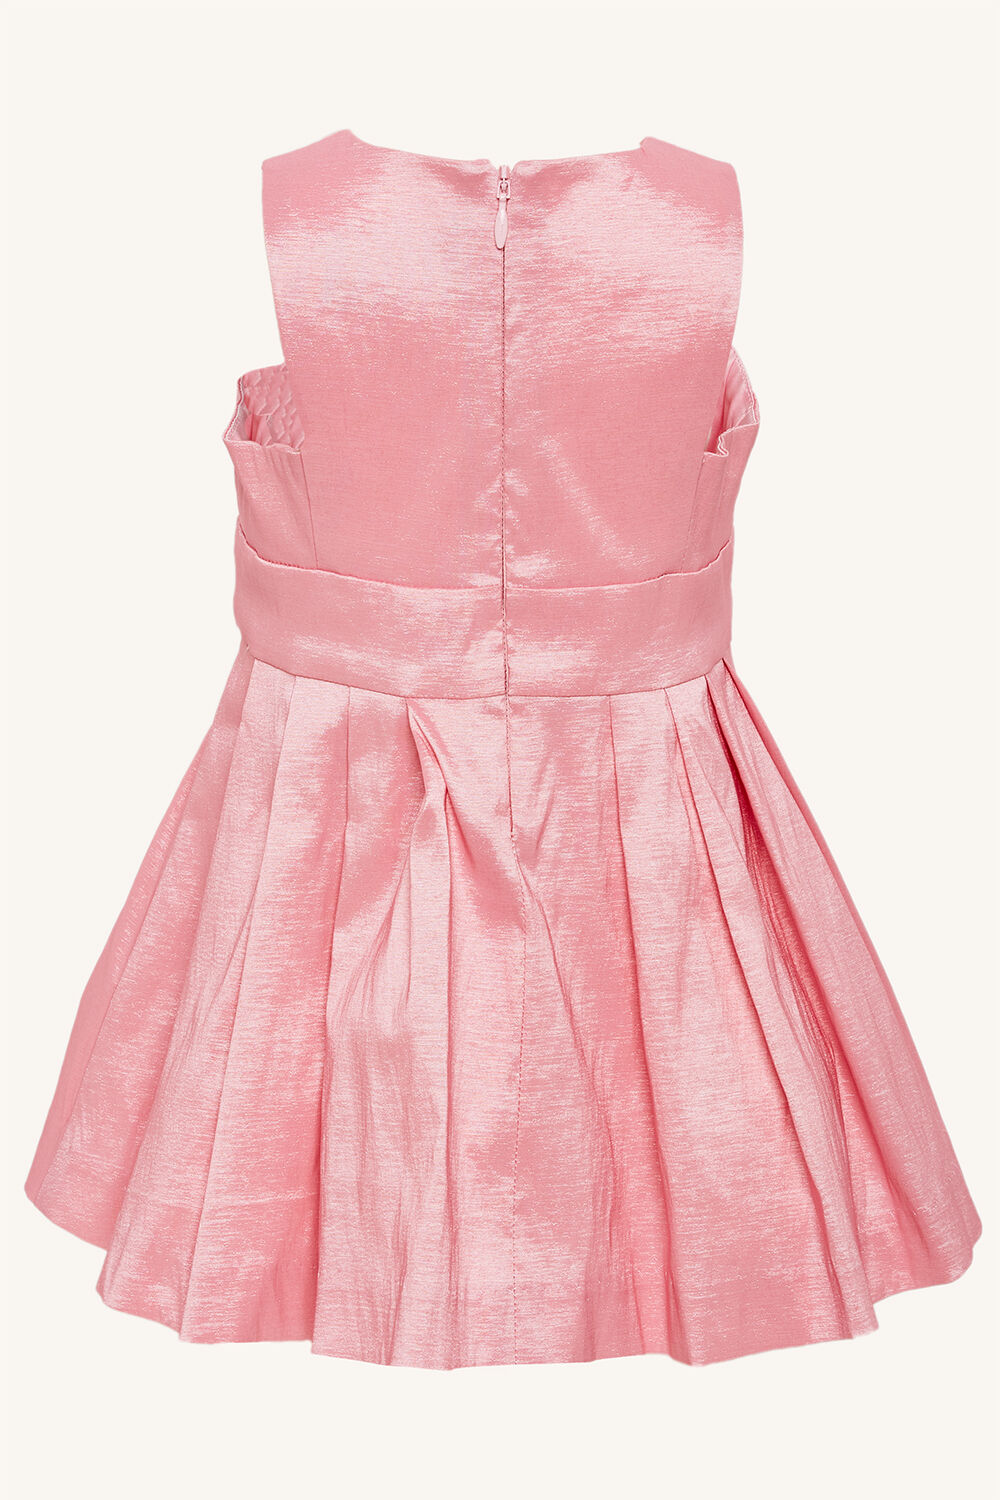 CLARA SHIMMER DRESS in colour PARFAIT PINK